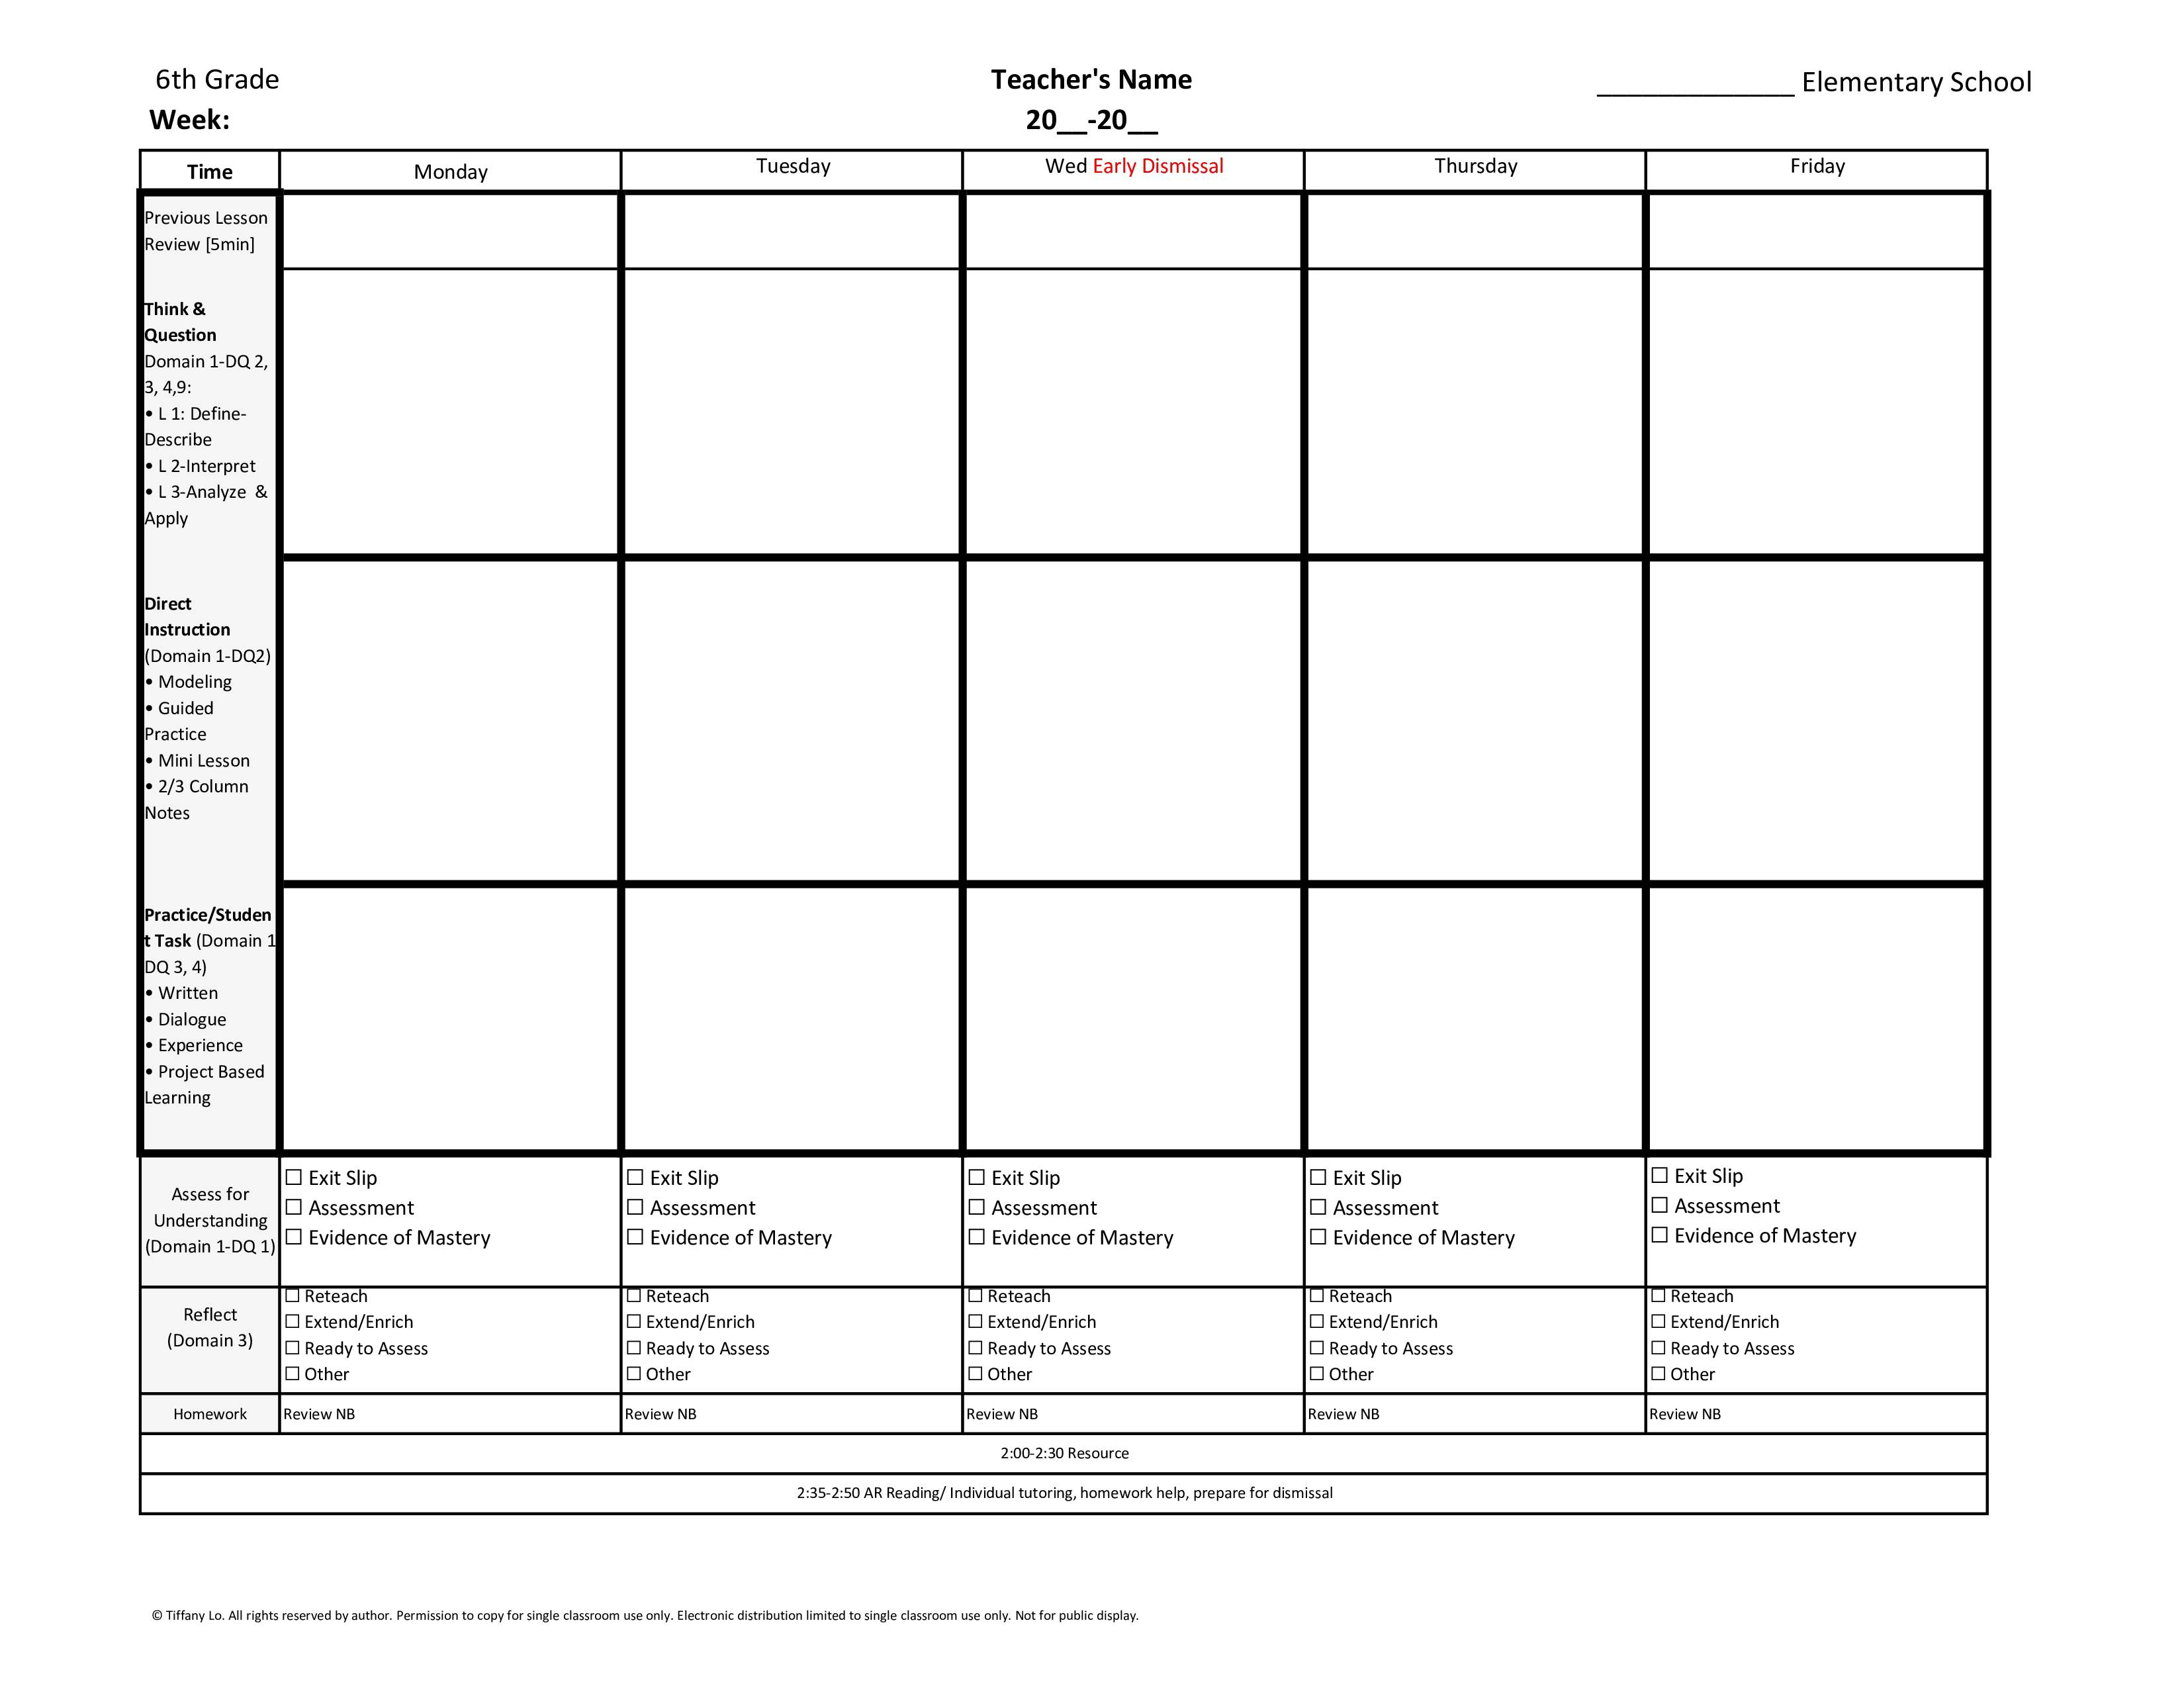 001 Fl 6Th Lessonplantemplate Tutor Lesson Plan ~ Tinypetition in Tutoring Template To Fill Out Weekly